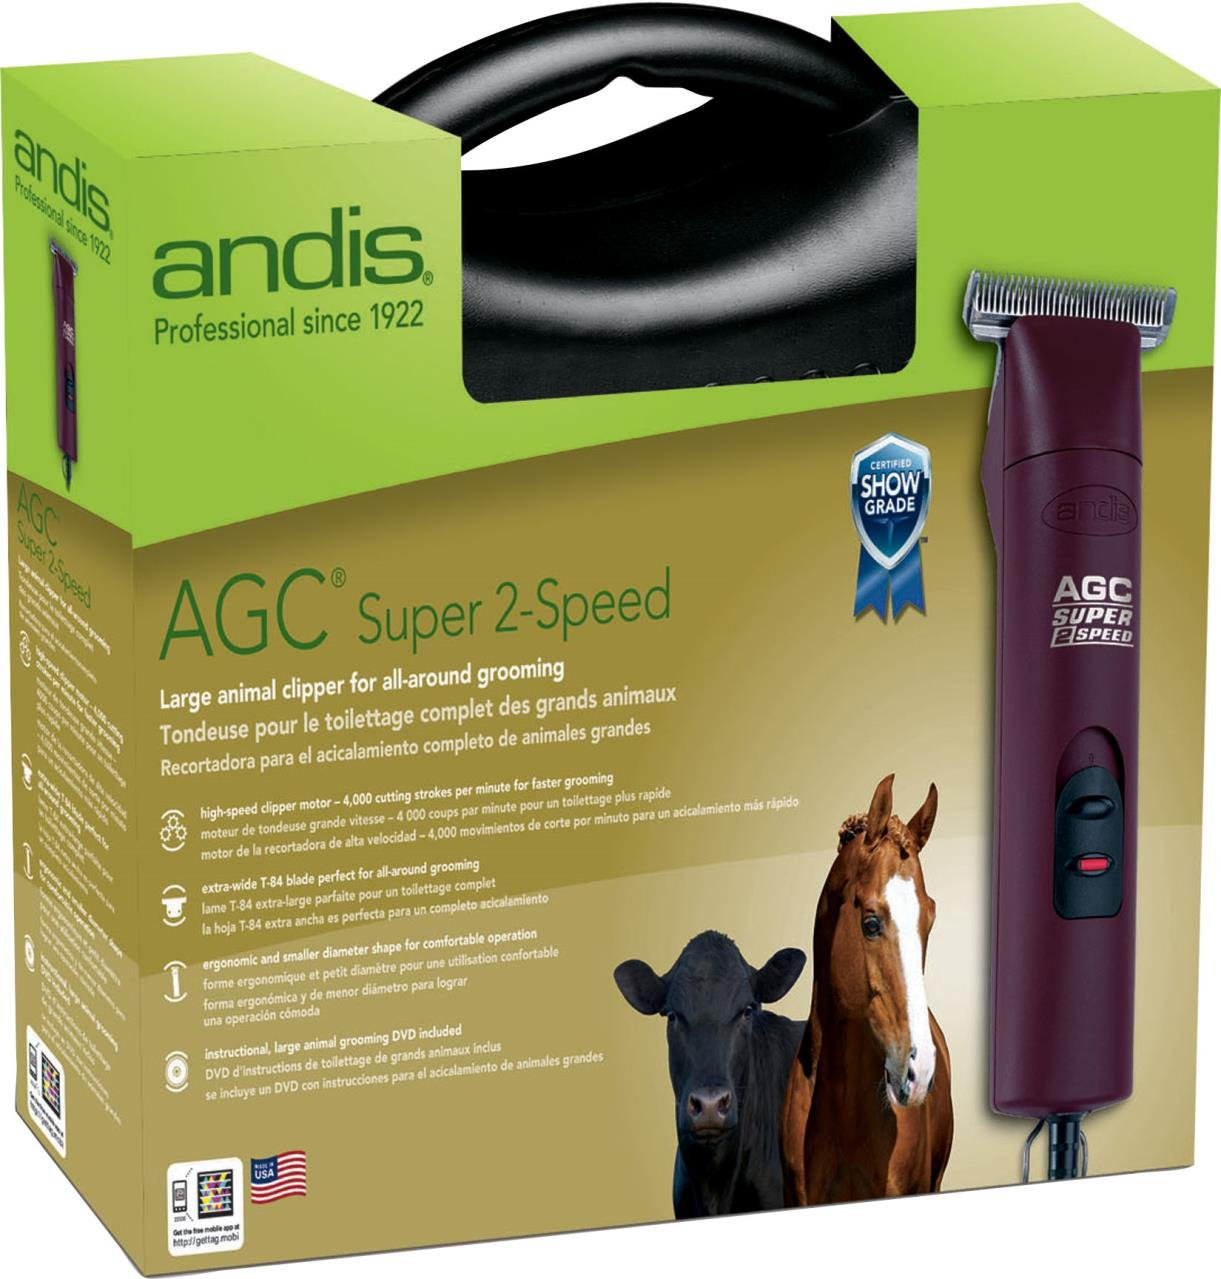 DPD AGC2 Super 2-Speed Horse Clipper with T-84 Blade - 3400/4400 SPM